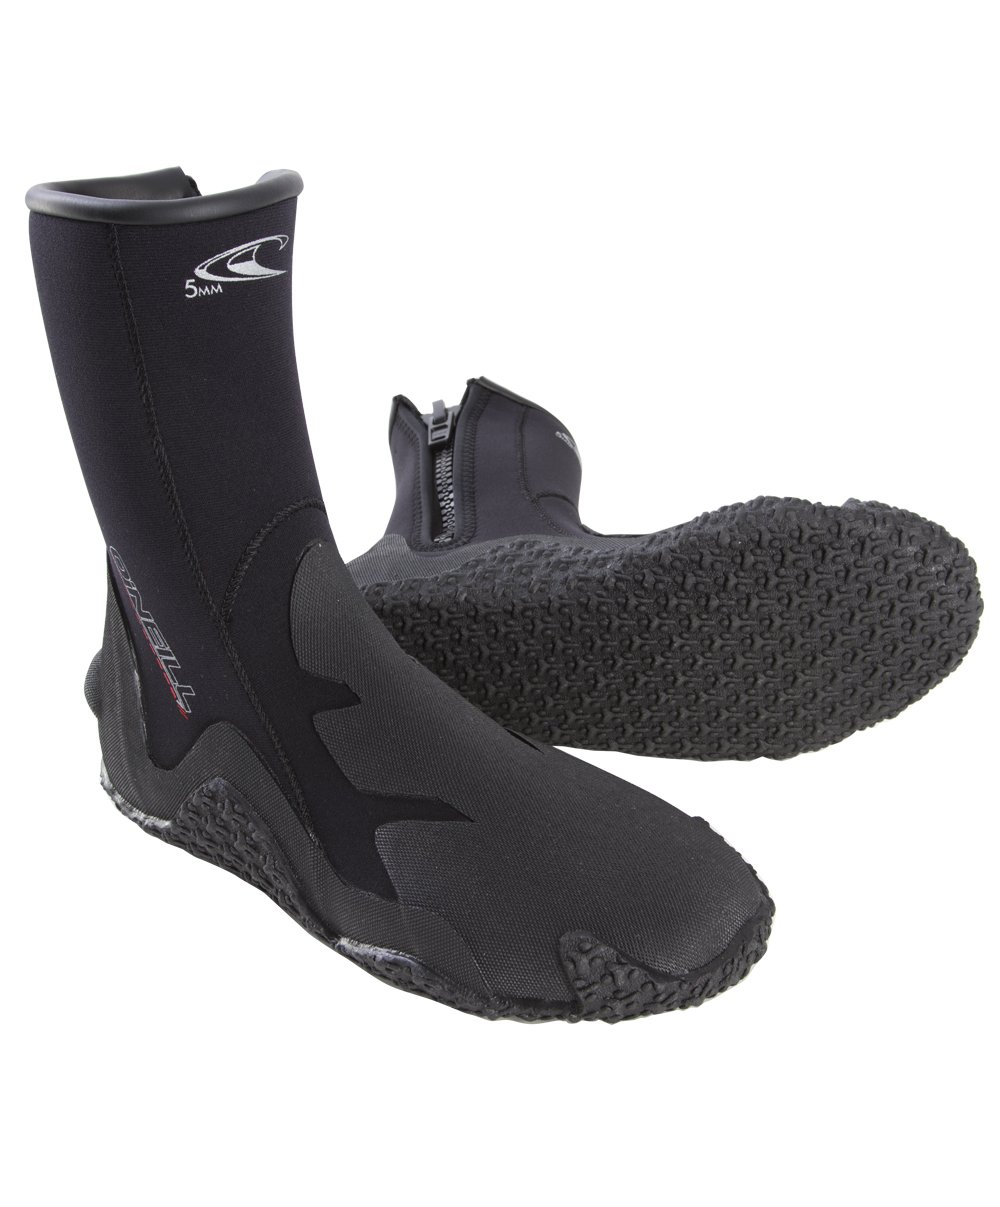 O'Neill Wetsuits Men's Dive 5mm Booties with Zipper by O'Neill Wetsuits